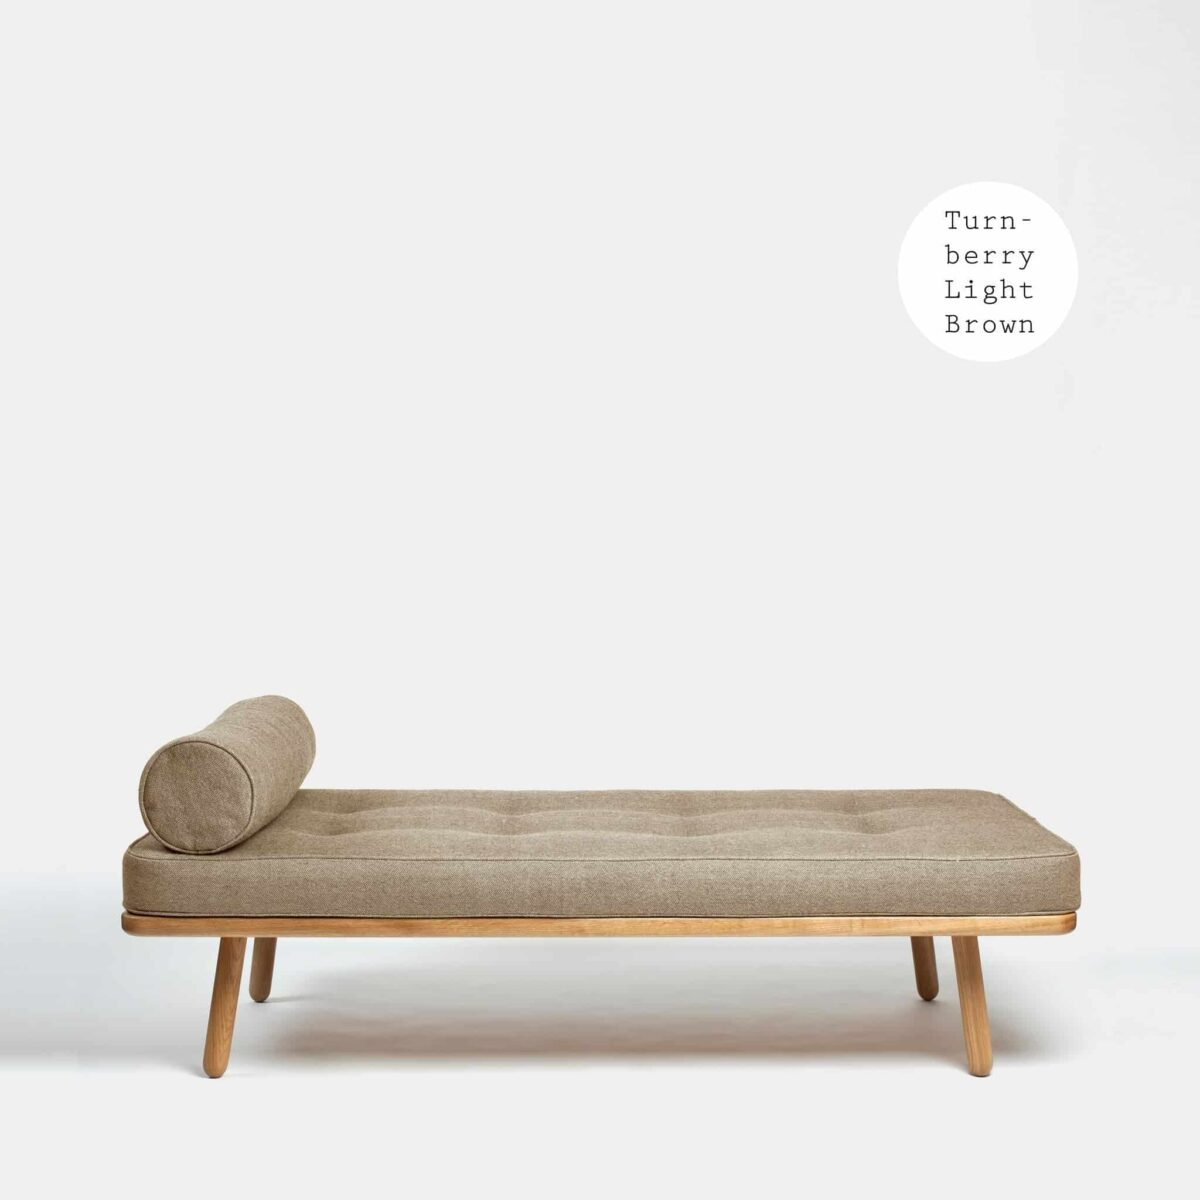 another-country-day-bed-one-oak-natural–mattress-1-bolster-turnberry-light-brown-001